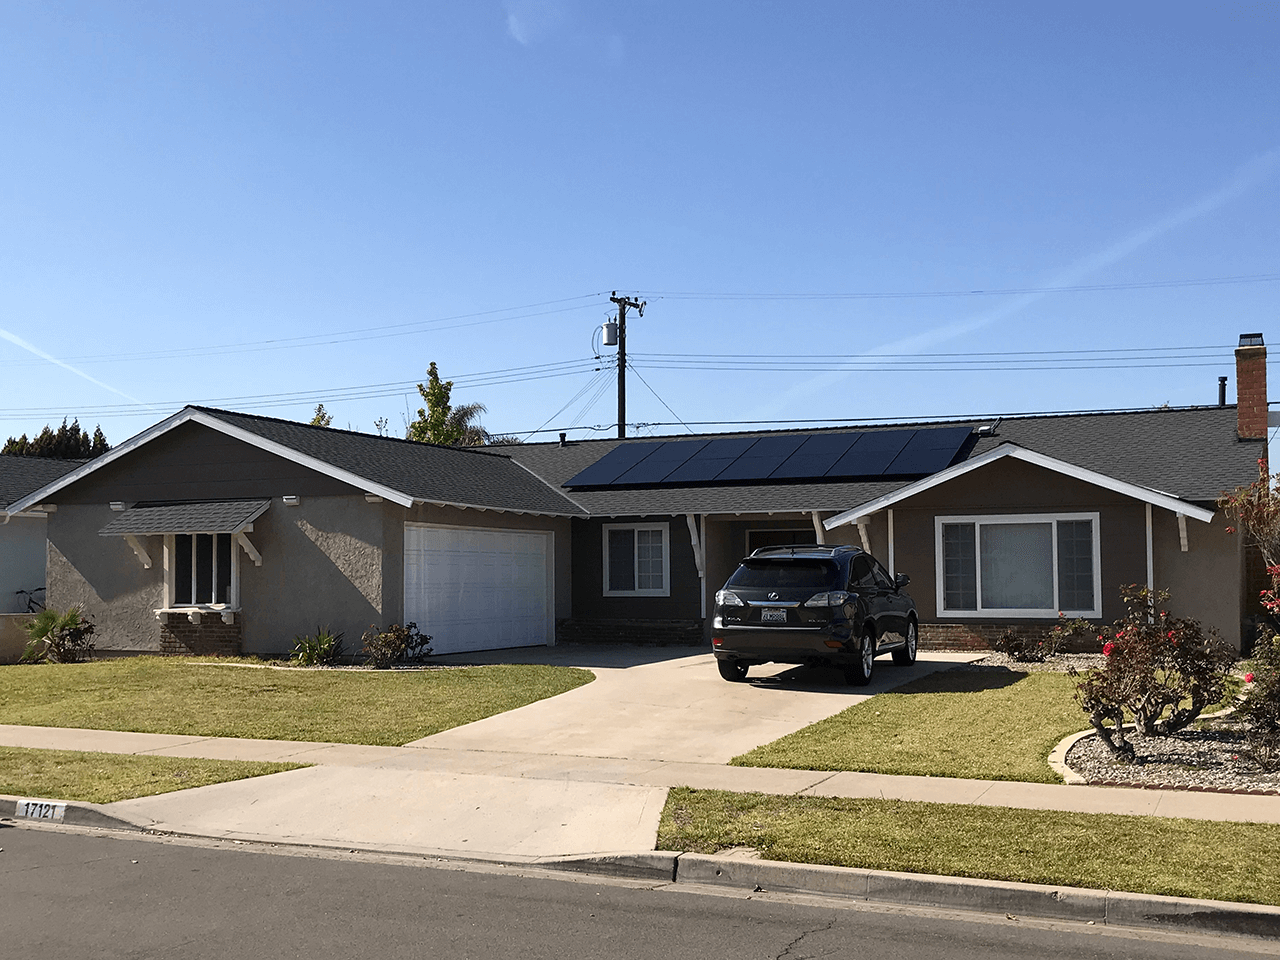 Home with solar panel installed on roof